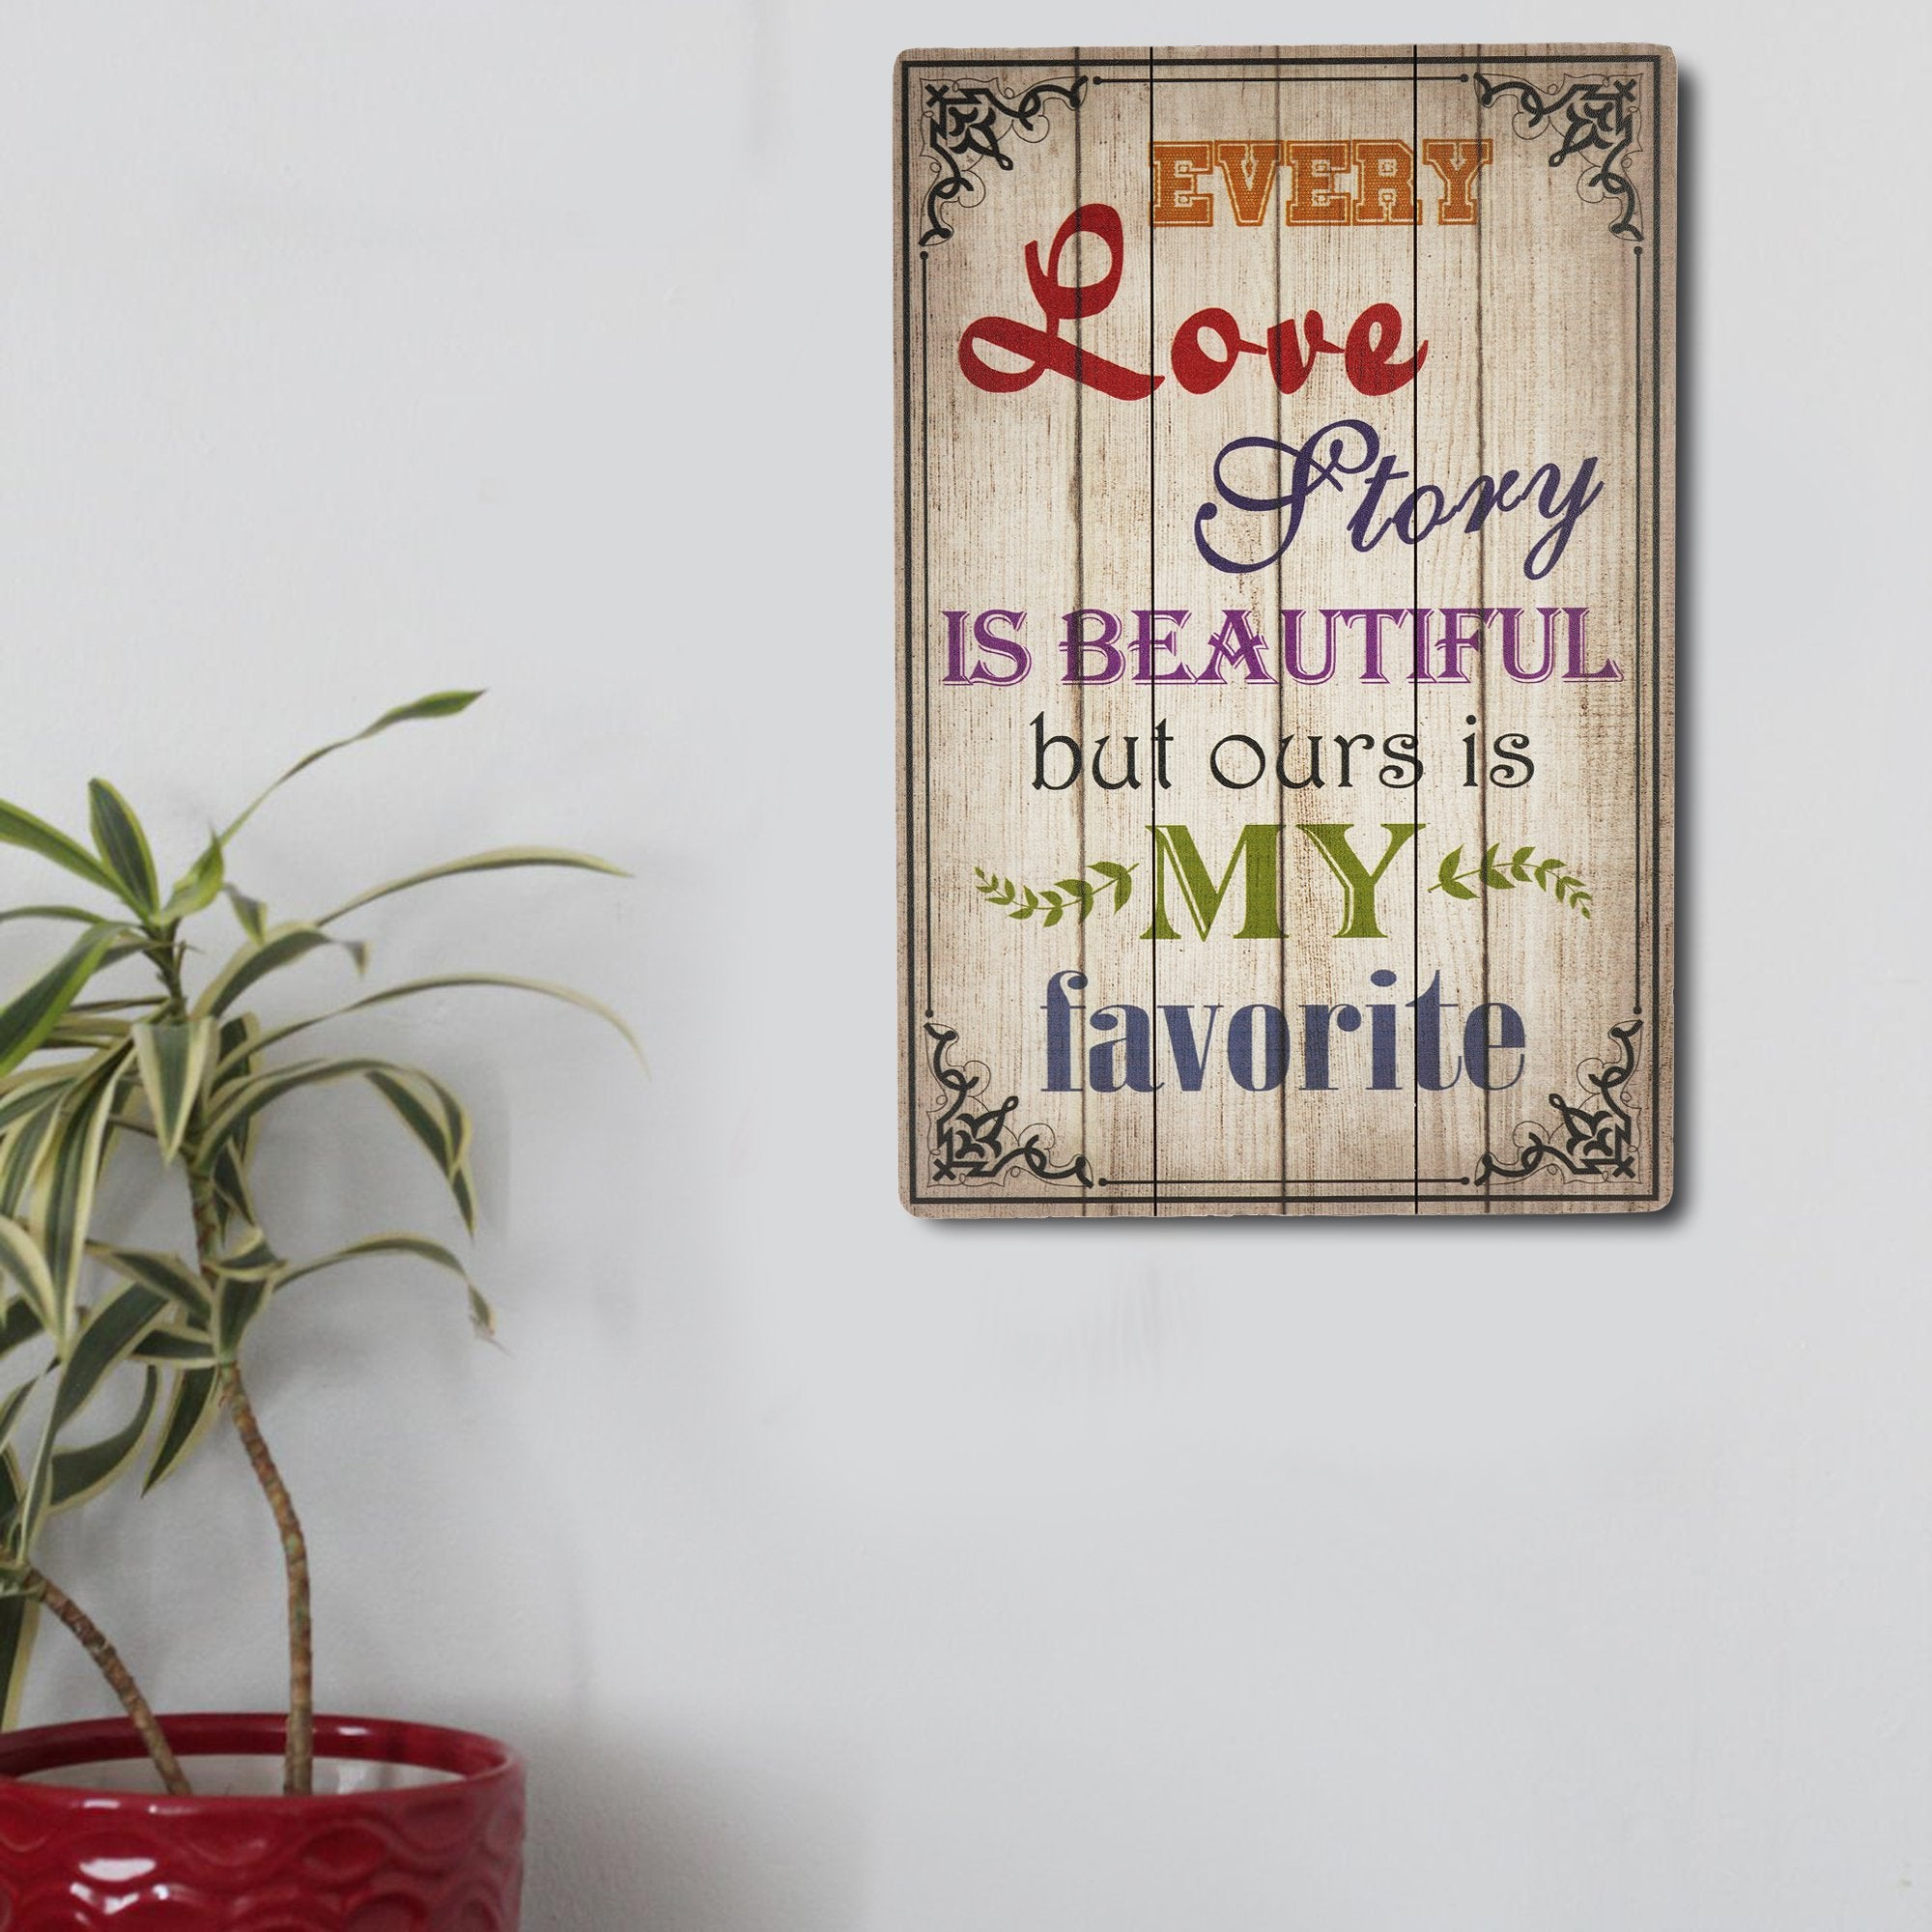 Love Story Wall Plaque from Teak Tale Home Decors